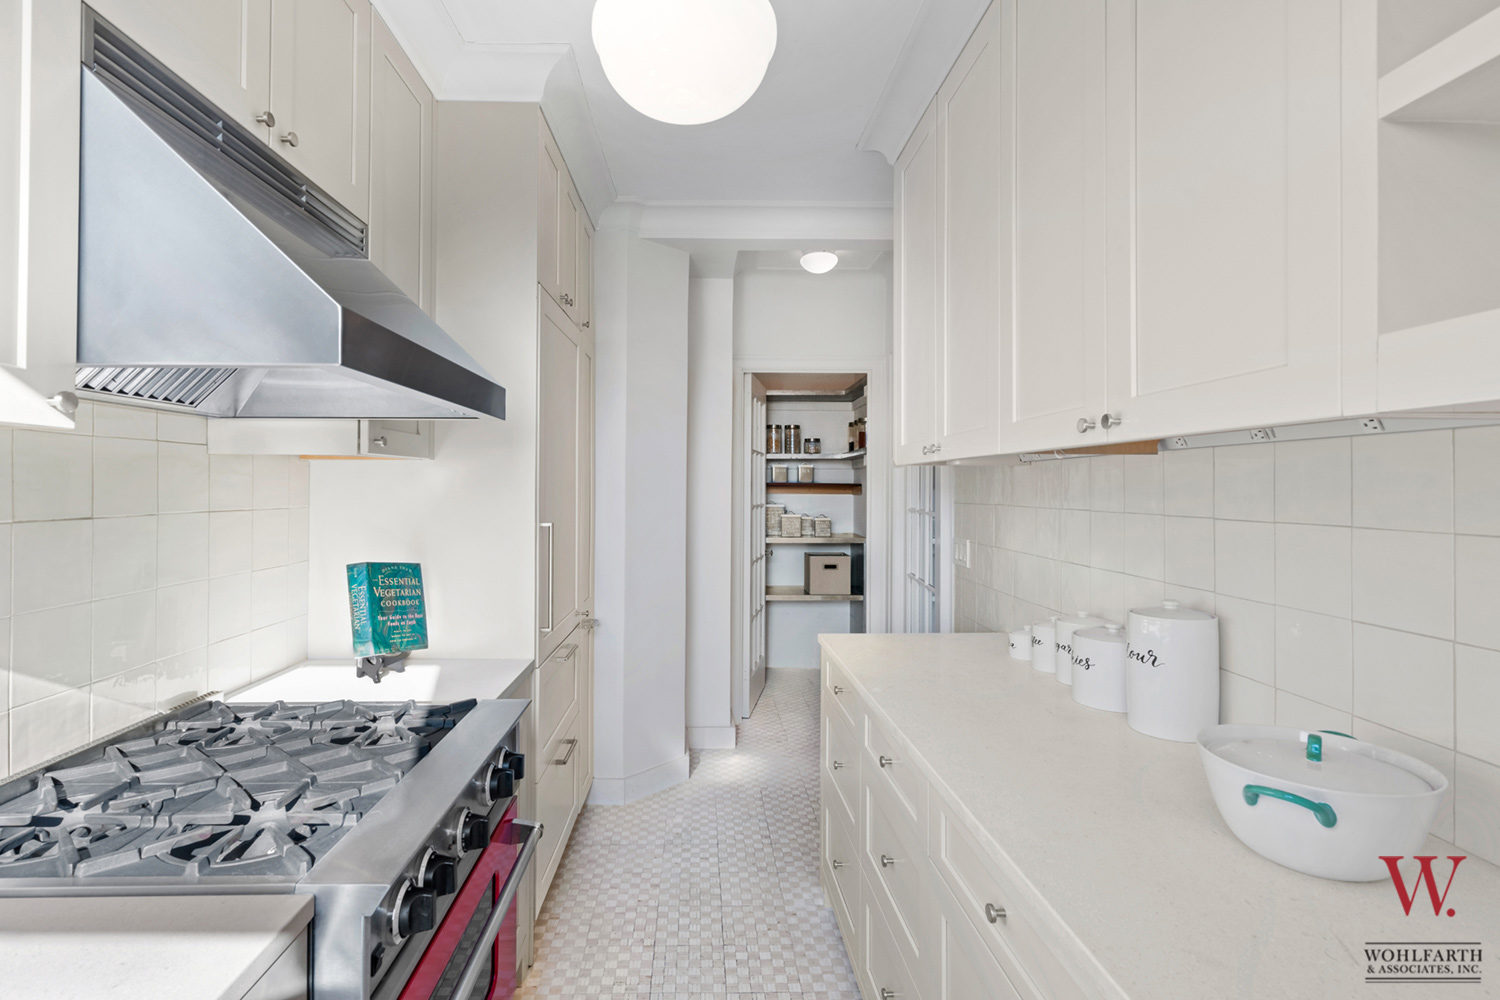 300-Wes-108th-Street-14A–Kitchen-2